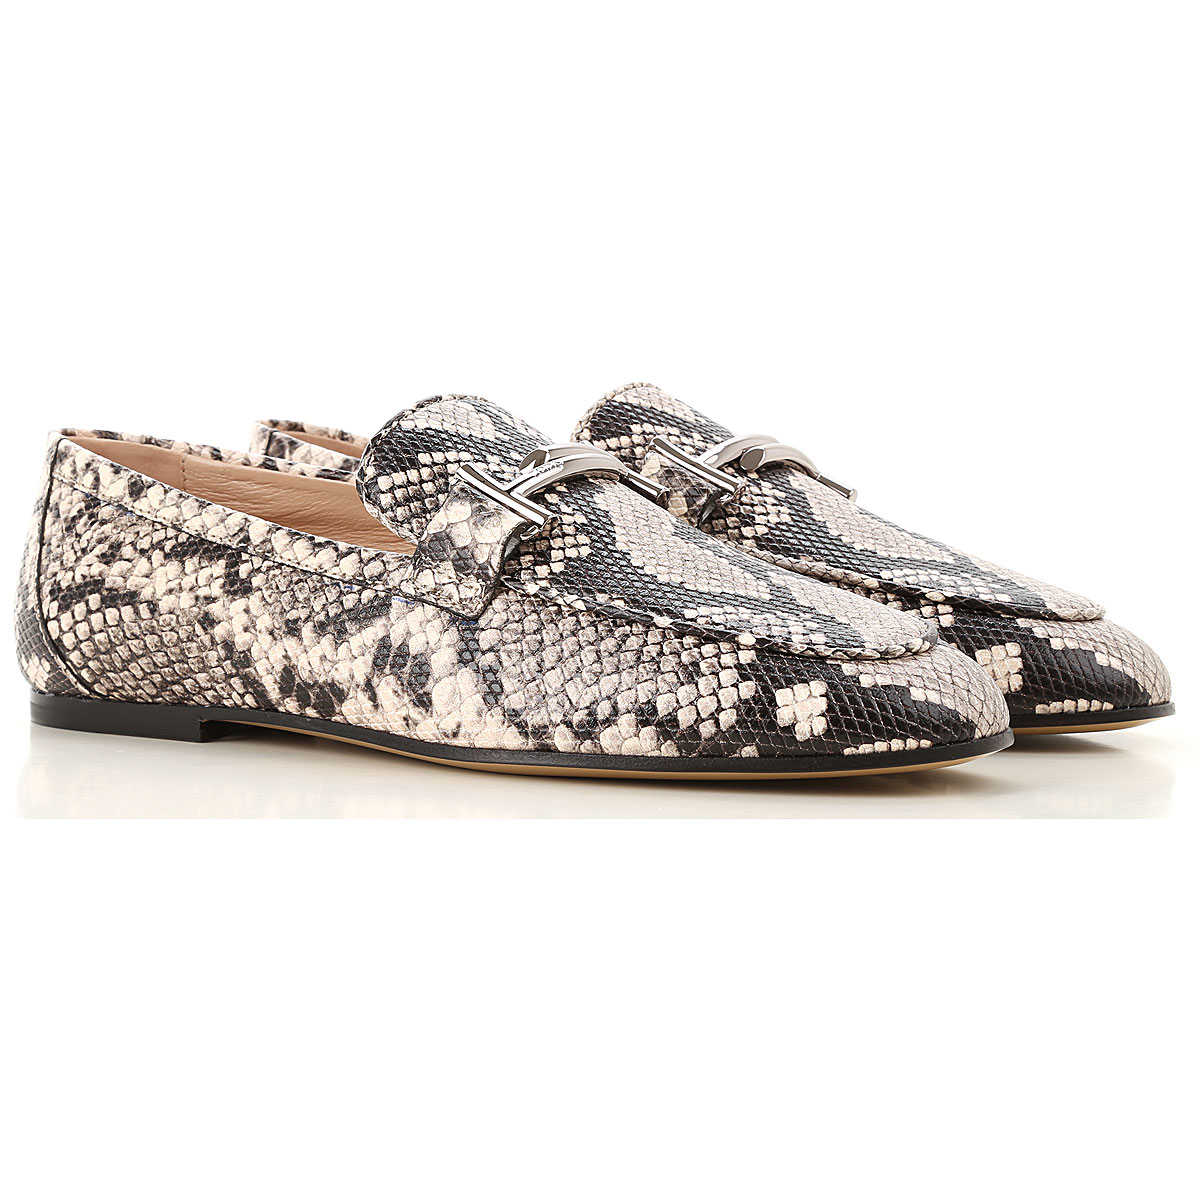 Tods Loafers for Women Stone Grey SE - GOOFASH